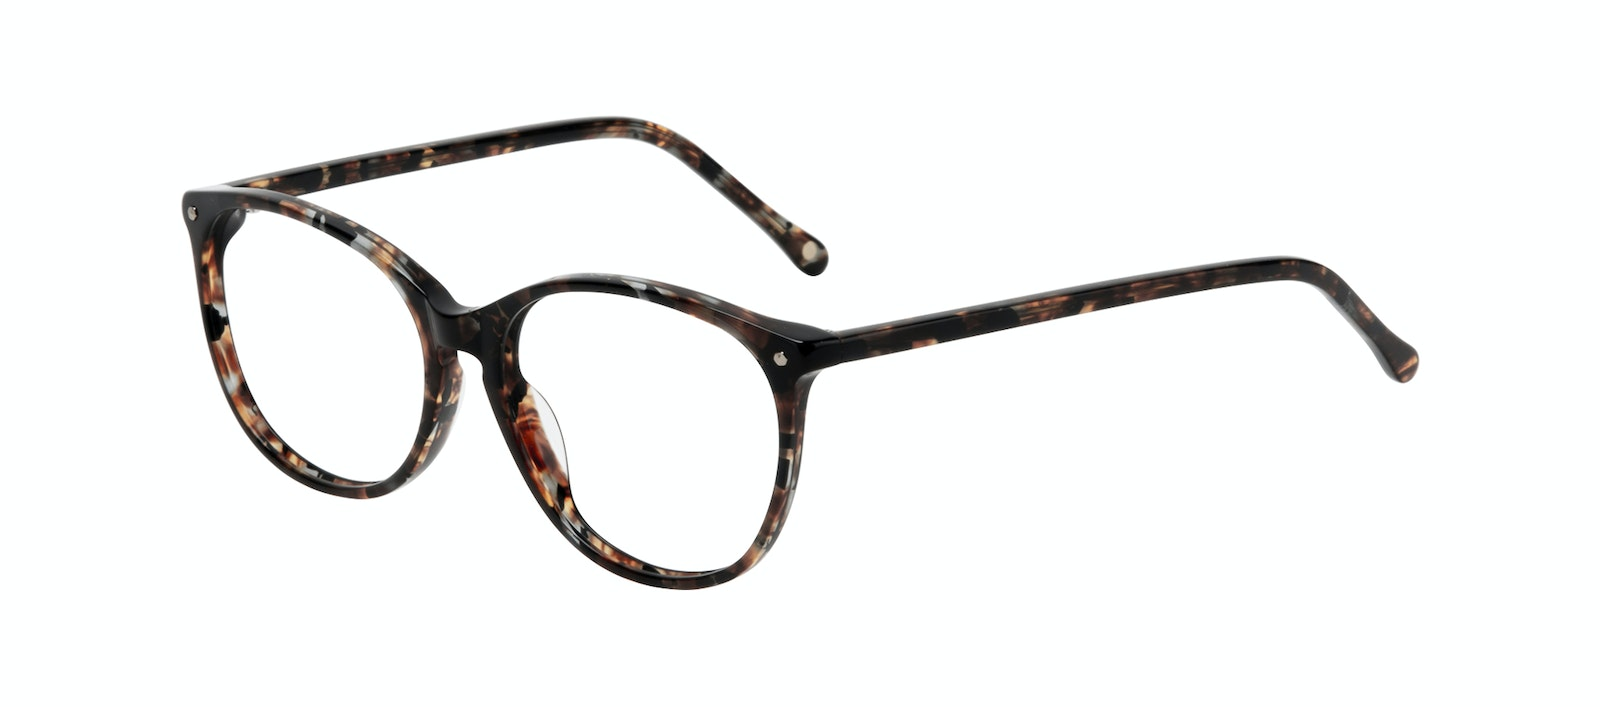 Affordable Fashion Glasses Rectangle Square Round Eyeglasses Women Nadine Sepia Tilt